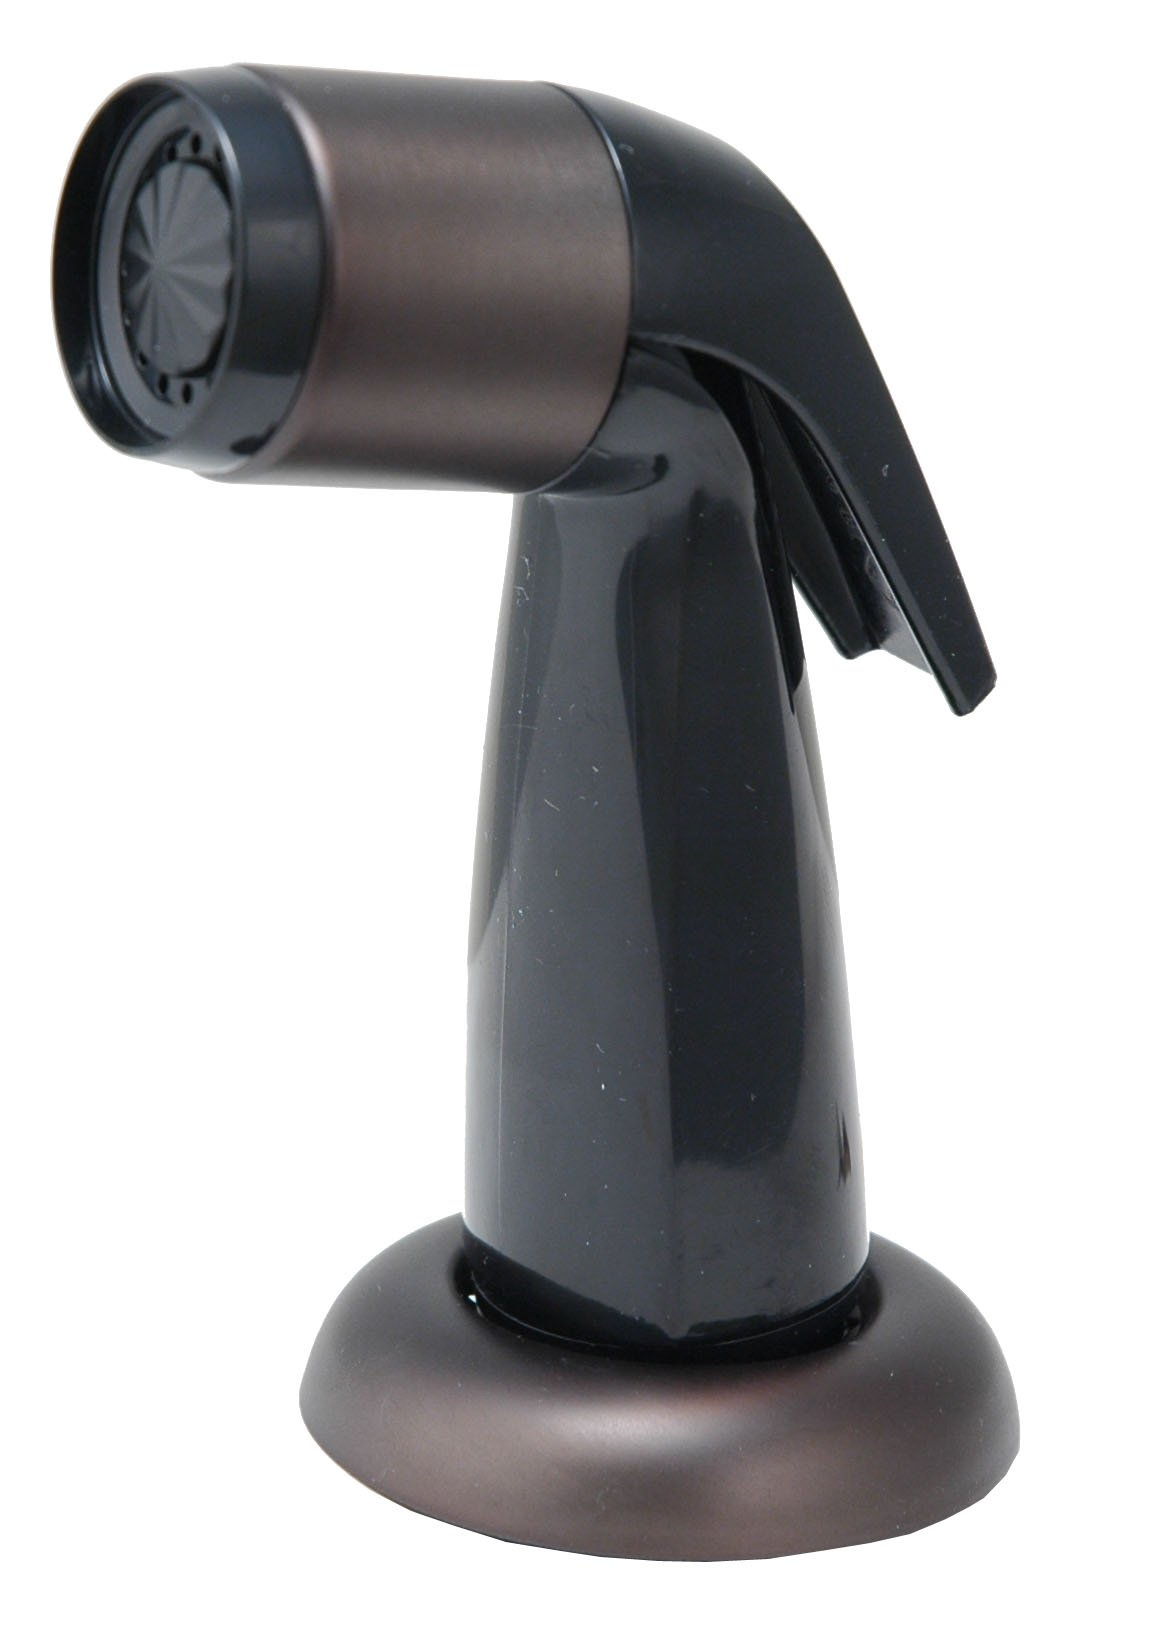 8'' Kitchen Deck Faucet, 2-handle, Washerless Cartridge - By Plumb USA (Oil Rubbed Bronze Porcelain Handles (With Sprayer)) by PlumbUSA (Image #3)